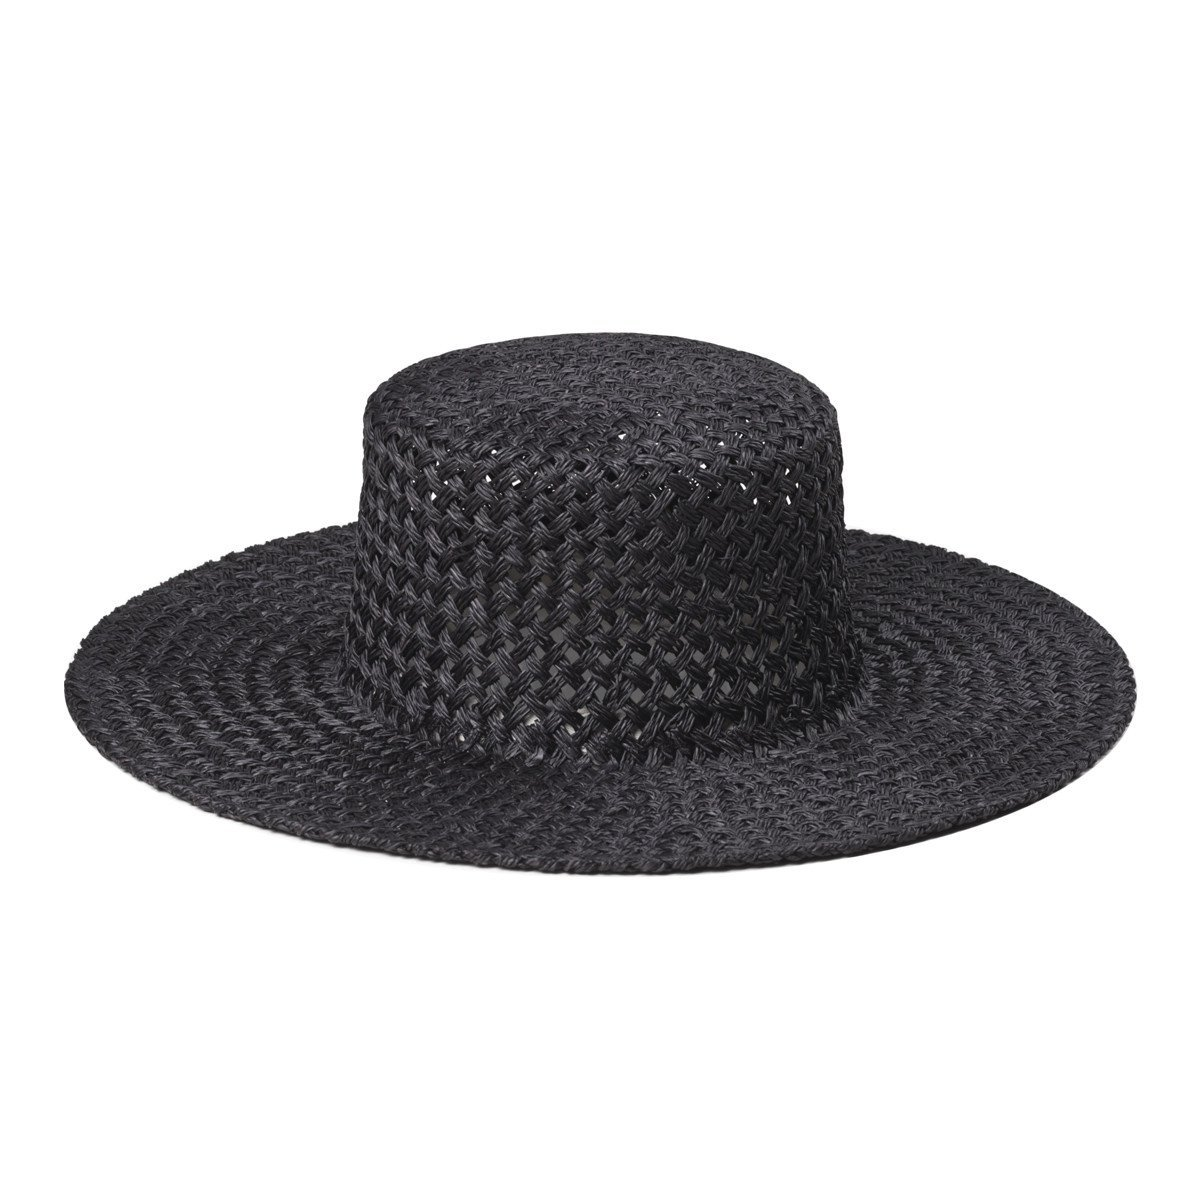 Lack of Color Women's Sunnydip Noir Straw Boater Black MD (57cm) by Lack of Color